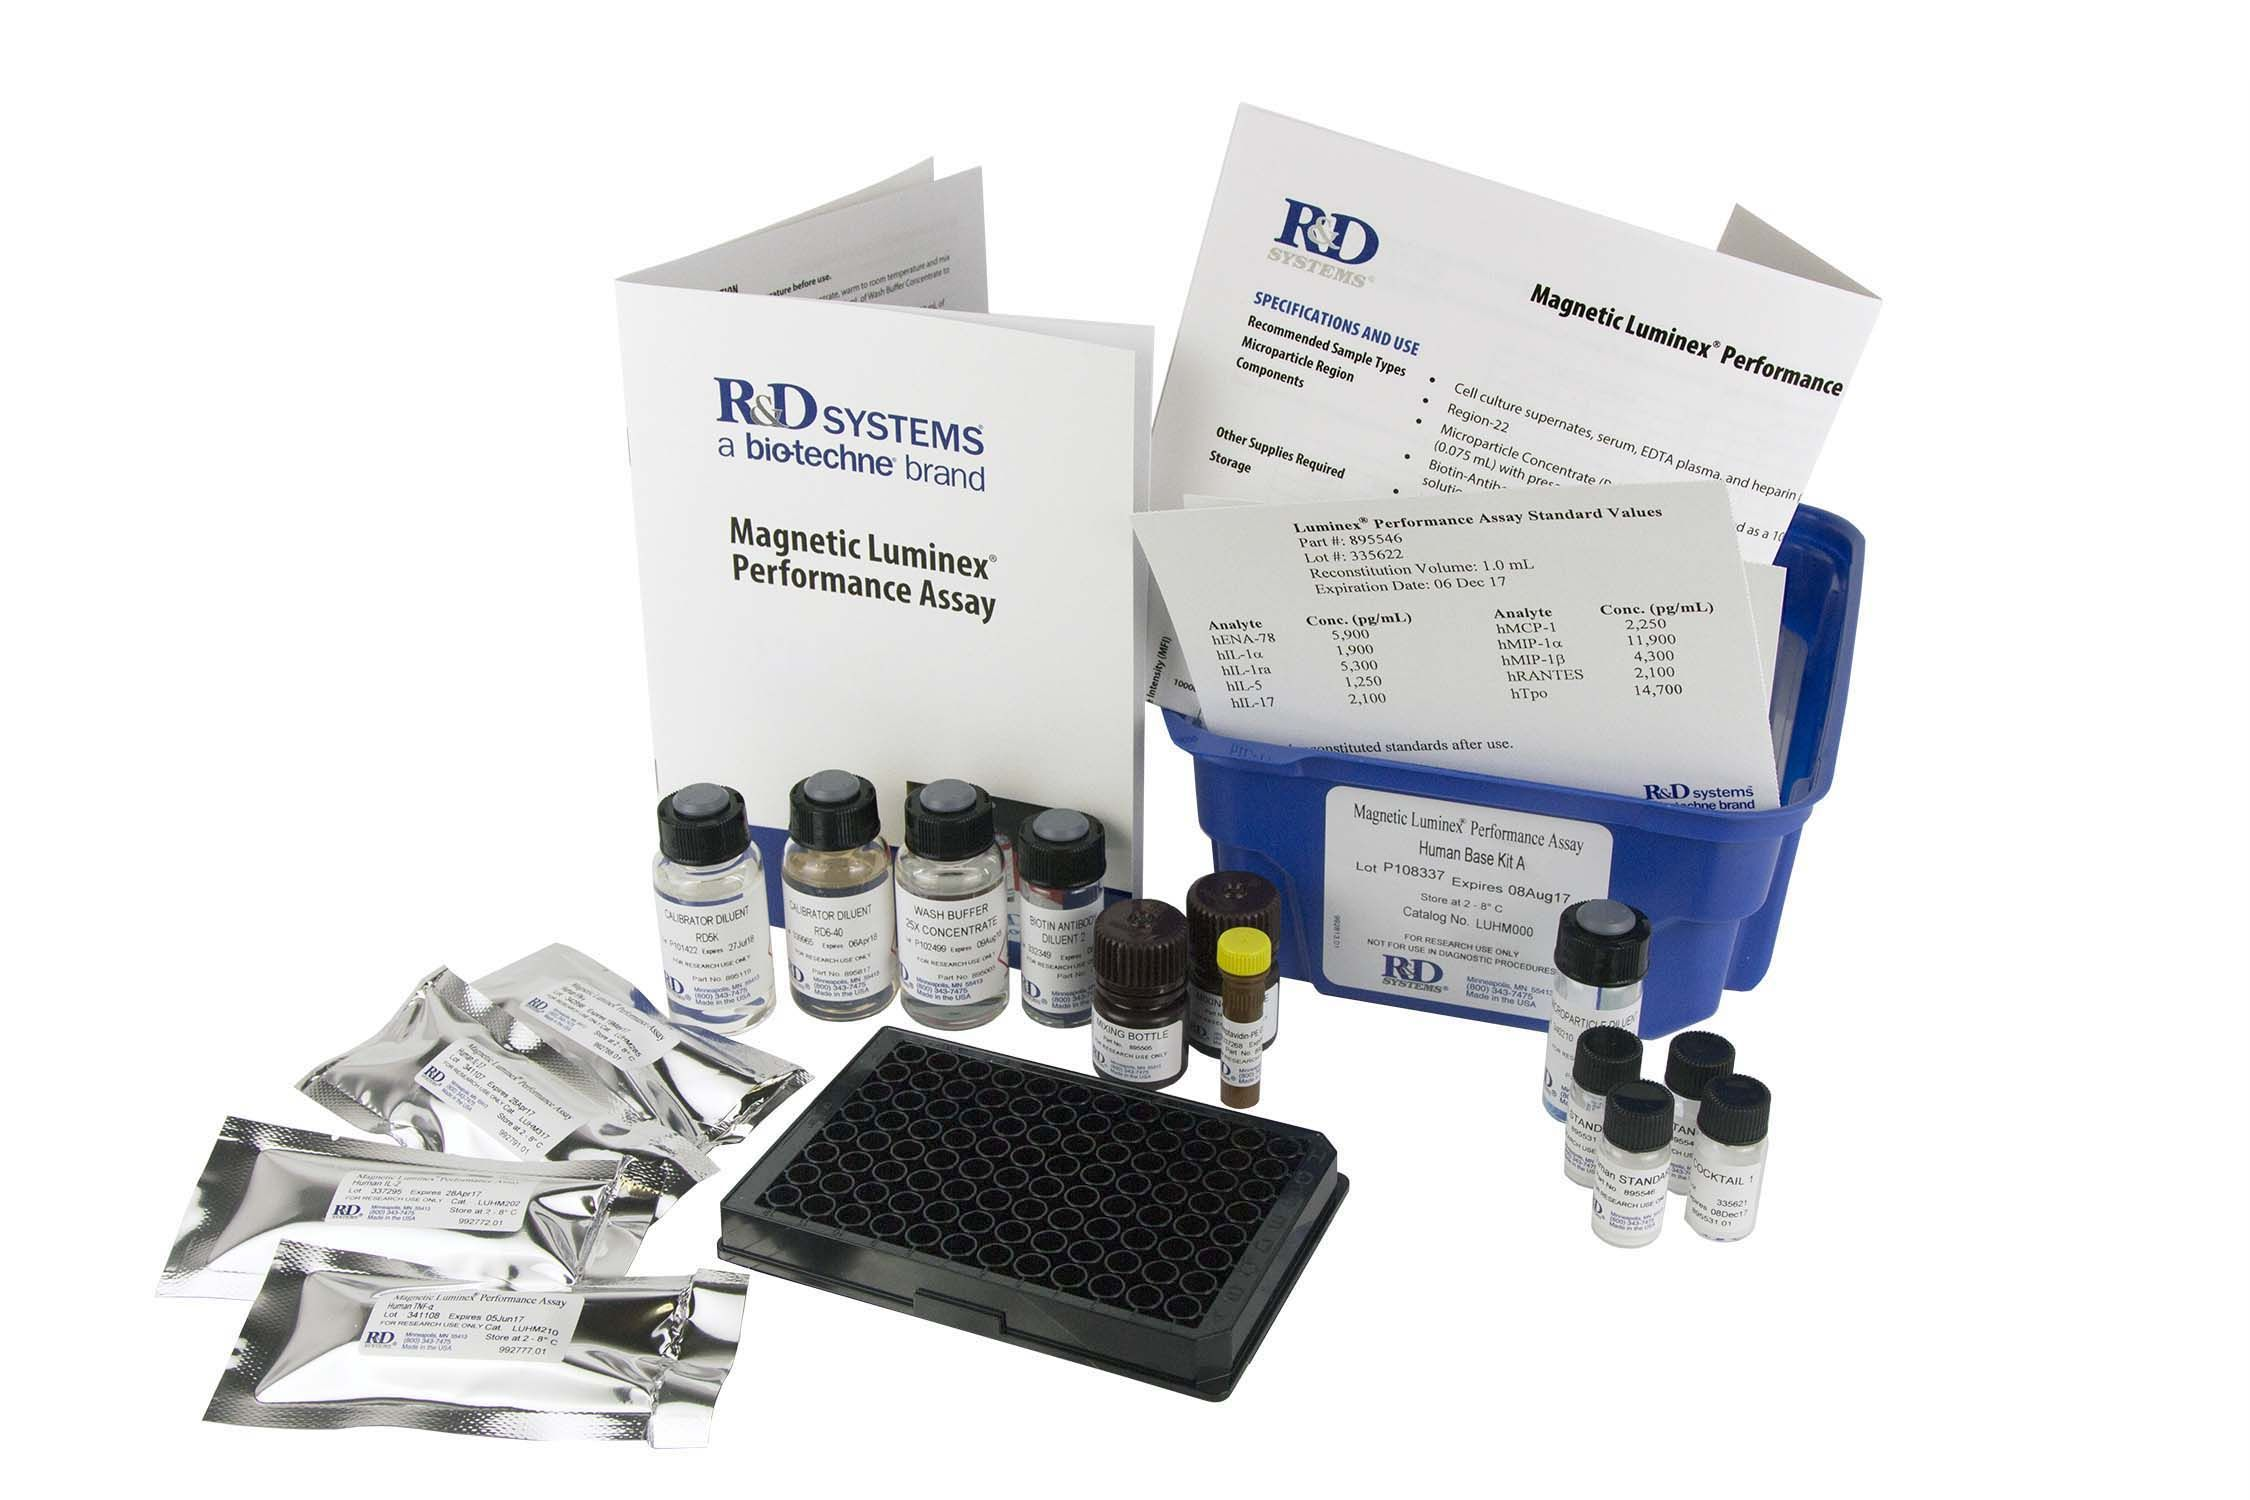 R&D Systems TGF-beta 3 Magnetic Luminex Performance Assay